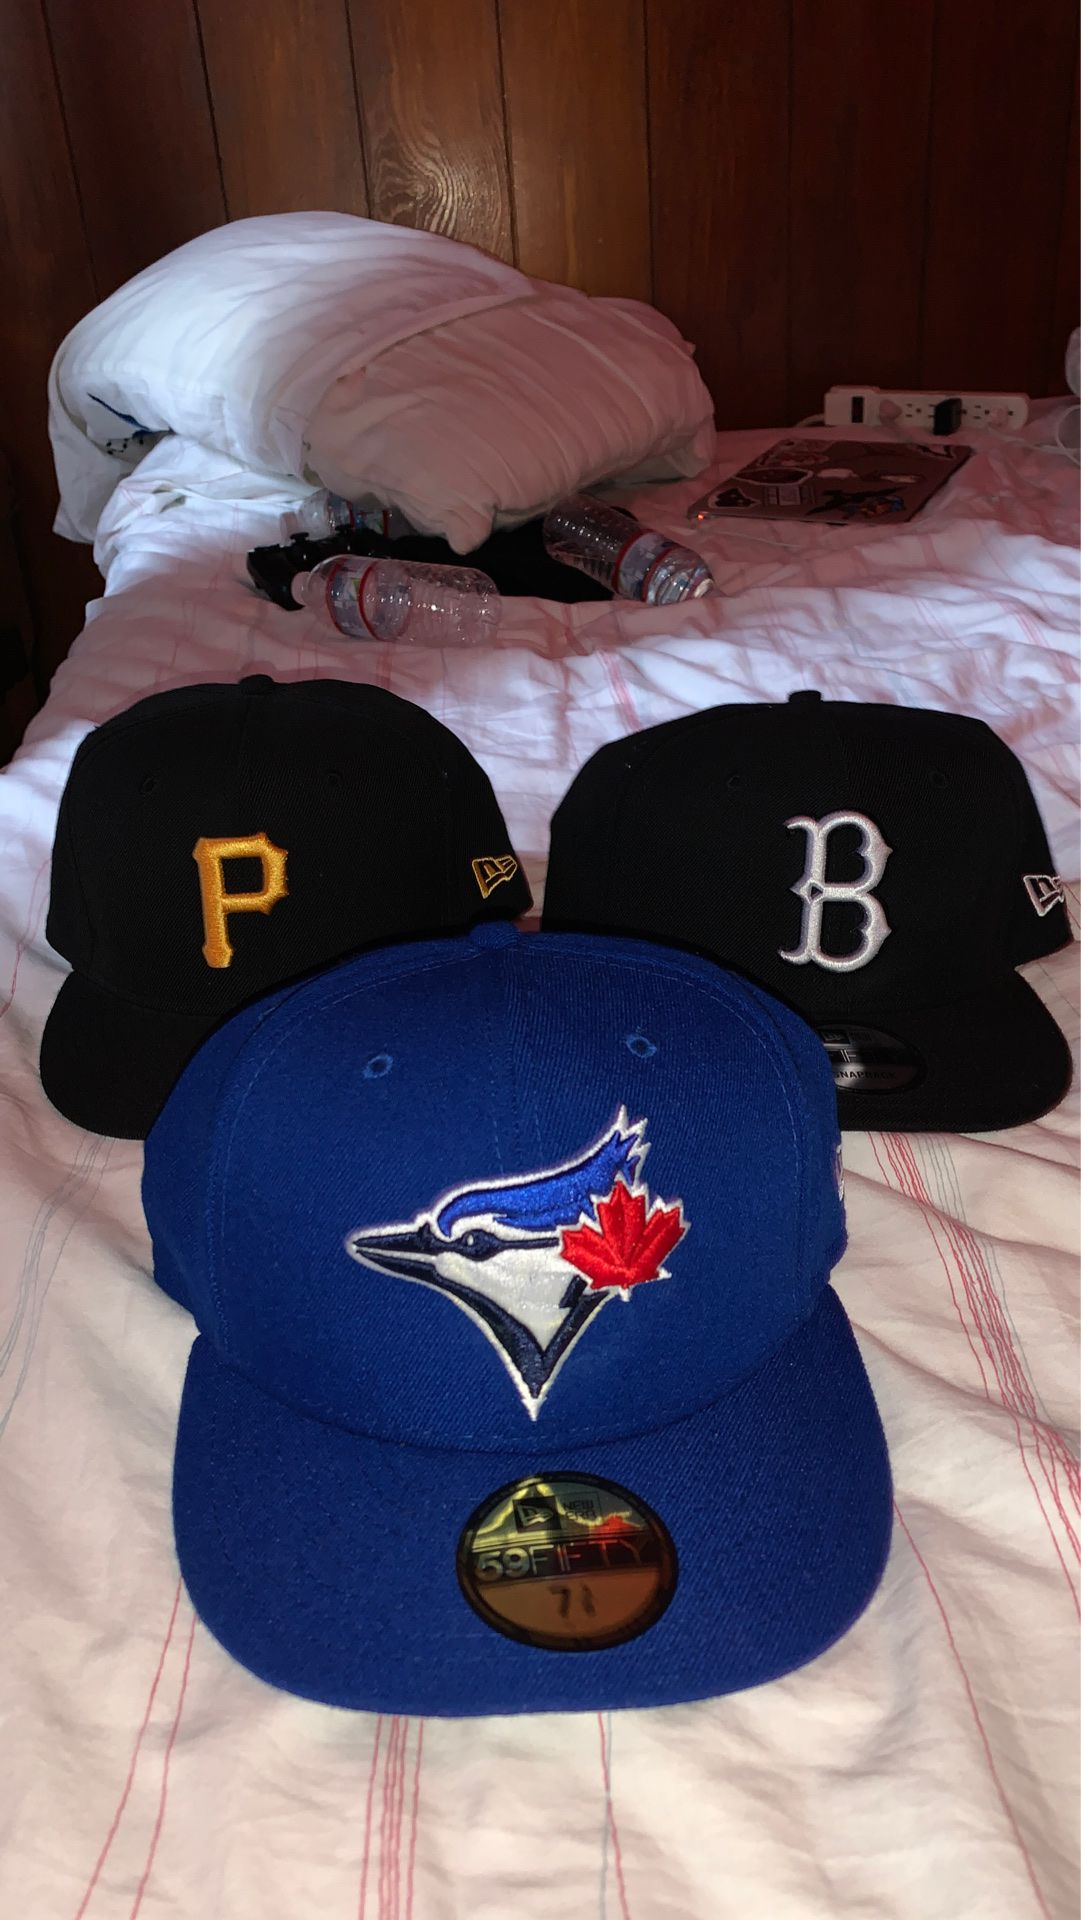 Pirates and brooklyn snapbacks/ blue jays fitted cap 7 3/8. Each $25